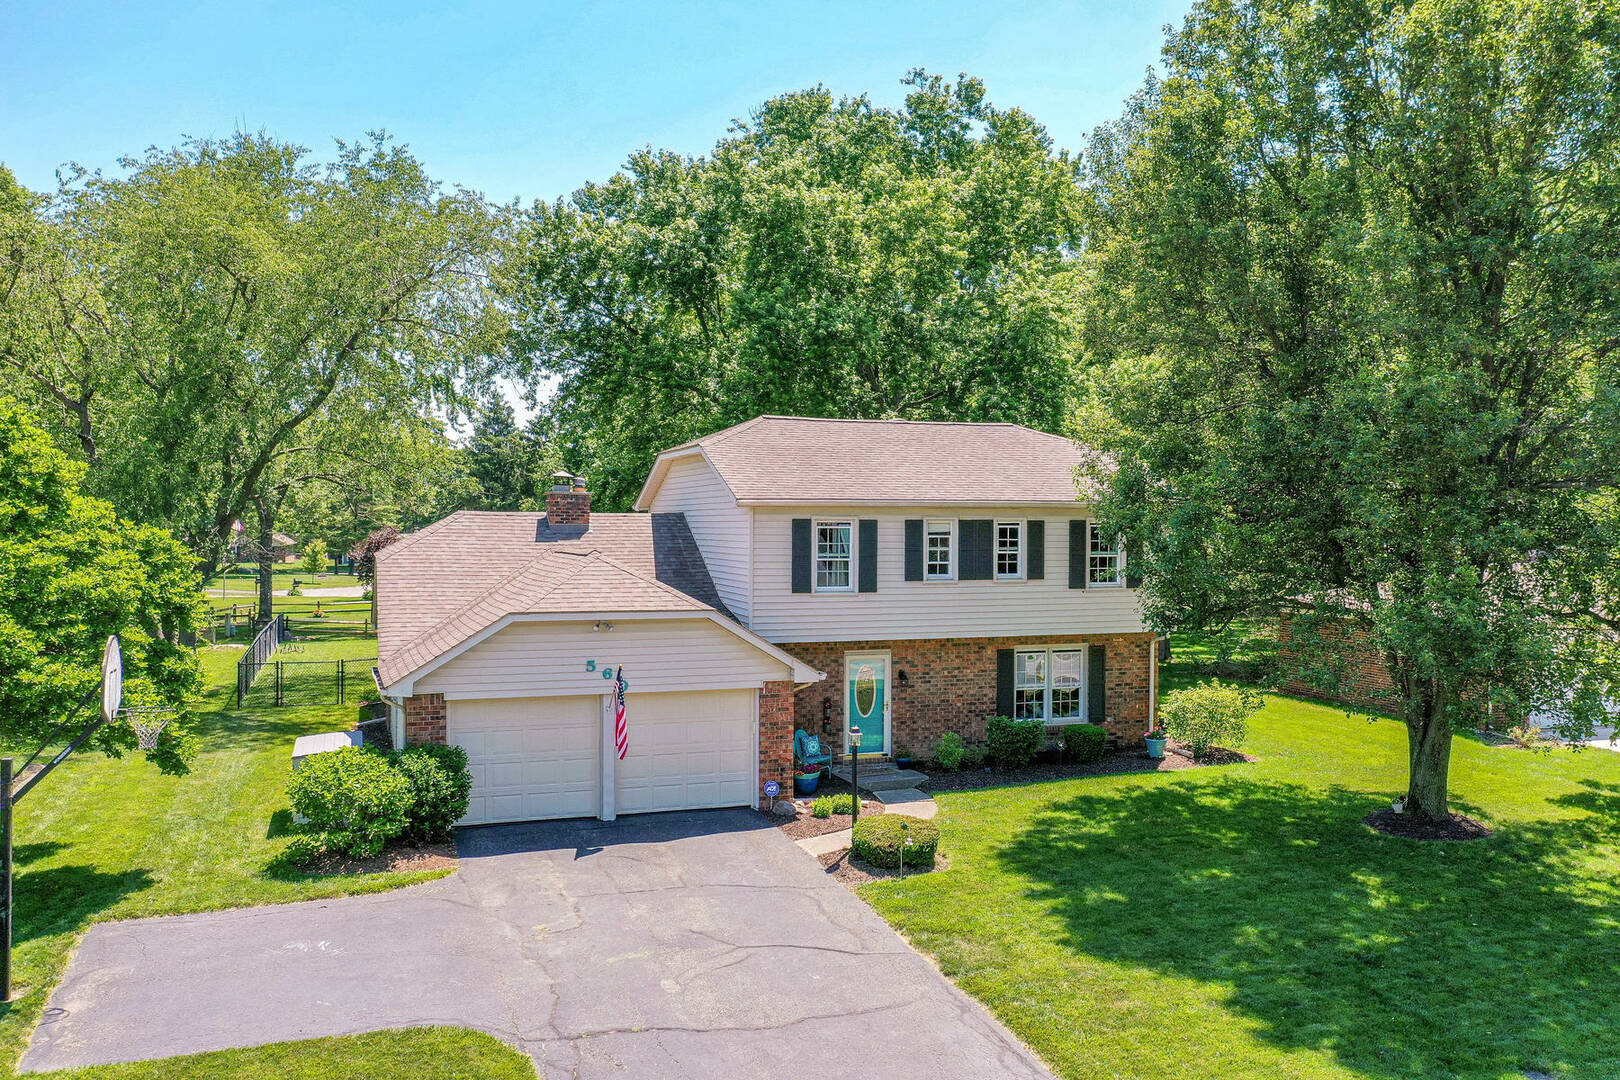 560 S. Harbour Dr. Noblesville, IN 46060